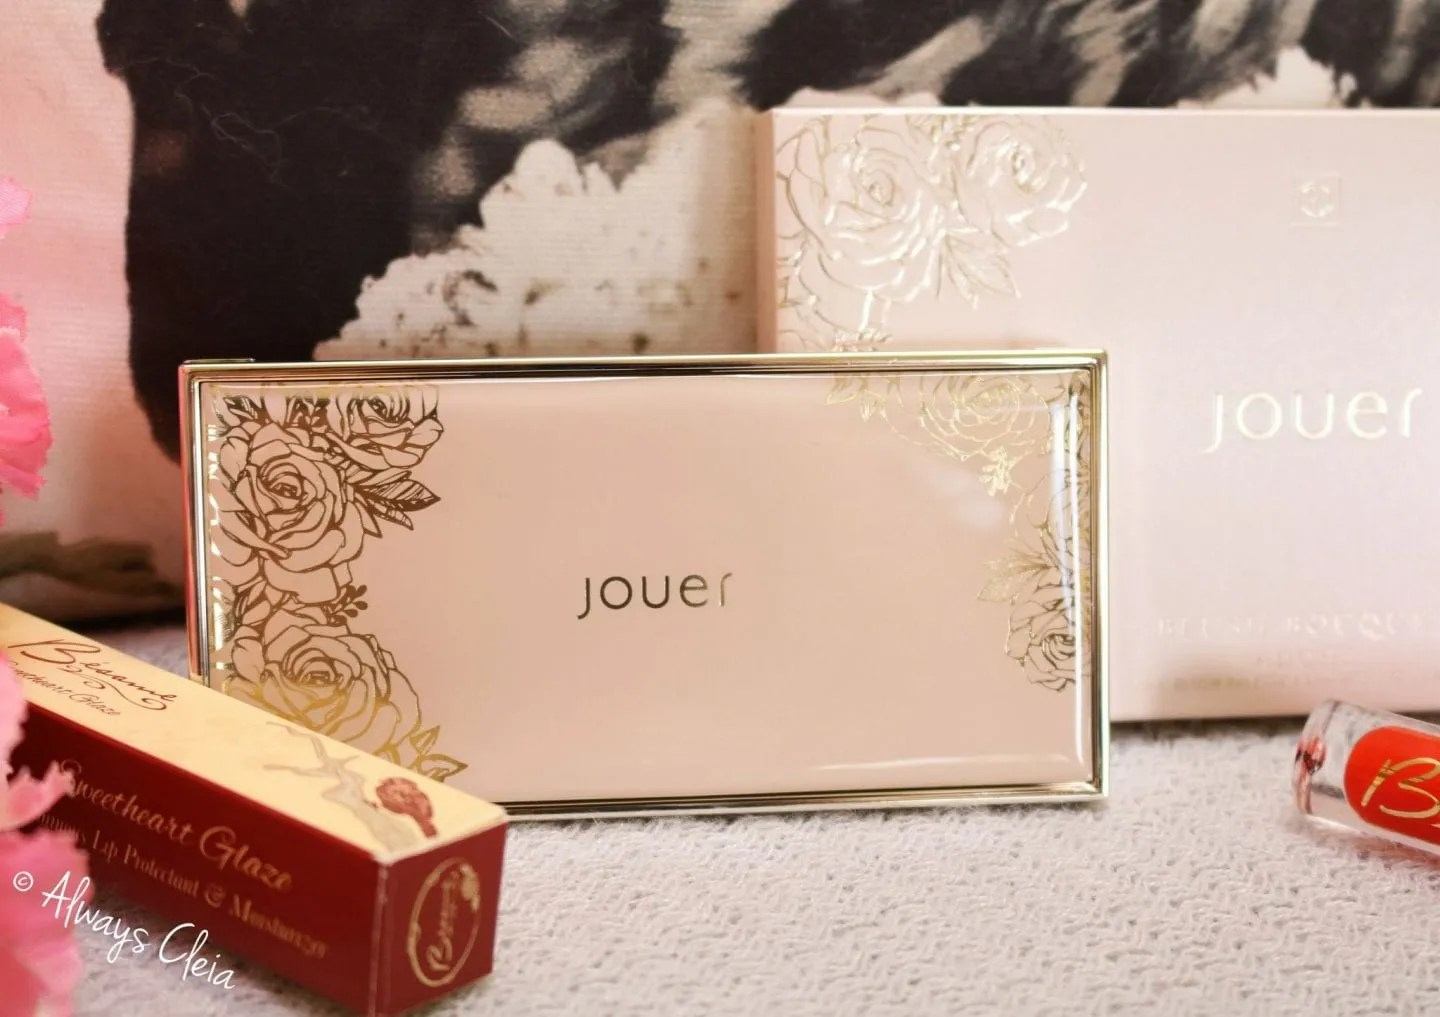 Jouer Blush Bouquet Blush Duo Packaging